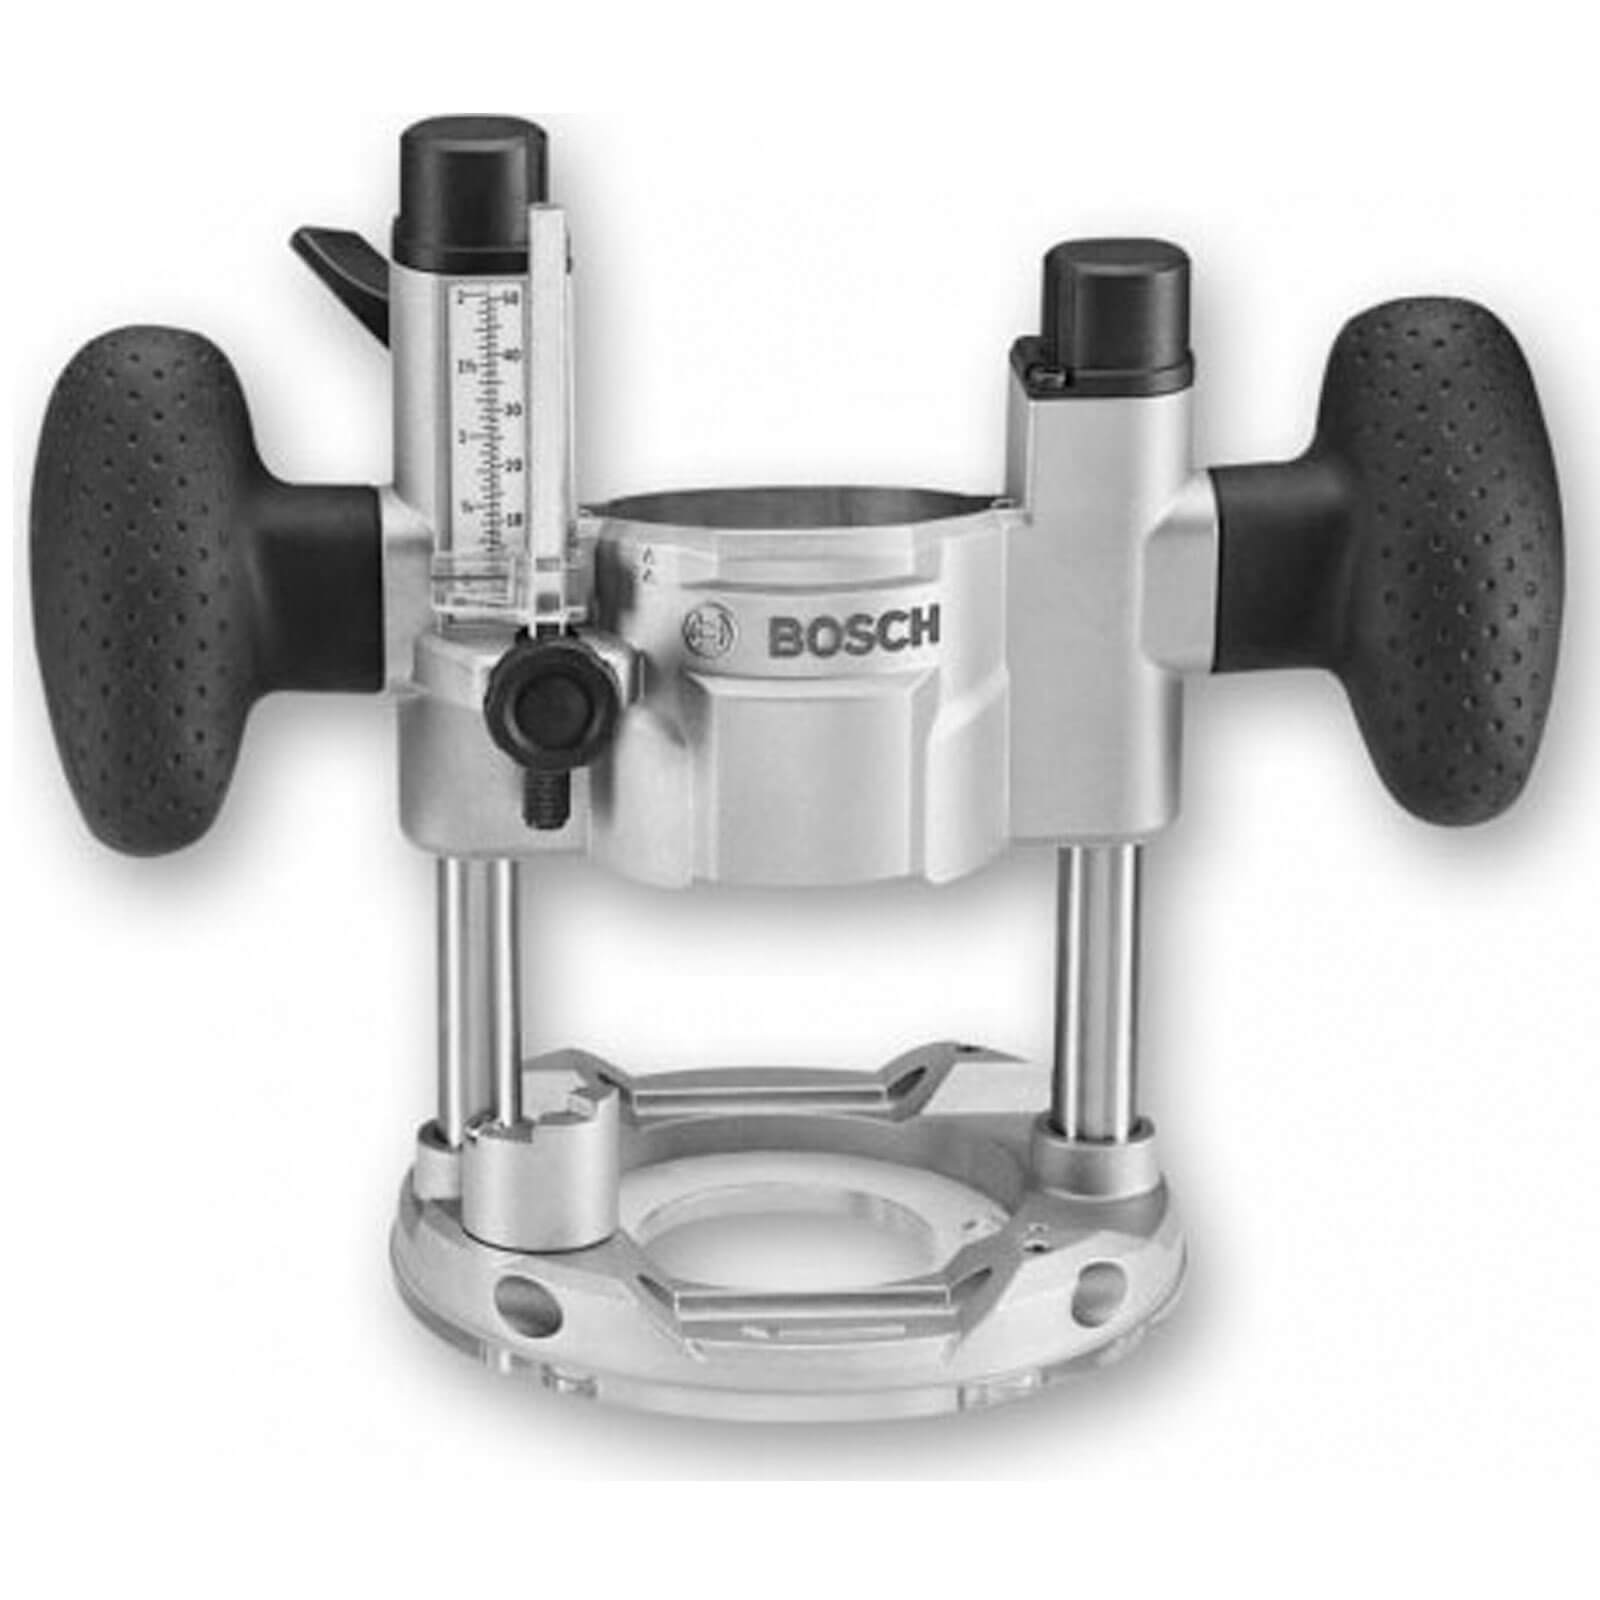 Bosch TE 600 Plunge Base for GKF 600 Routers